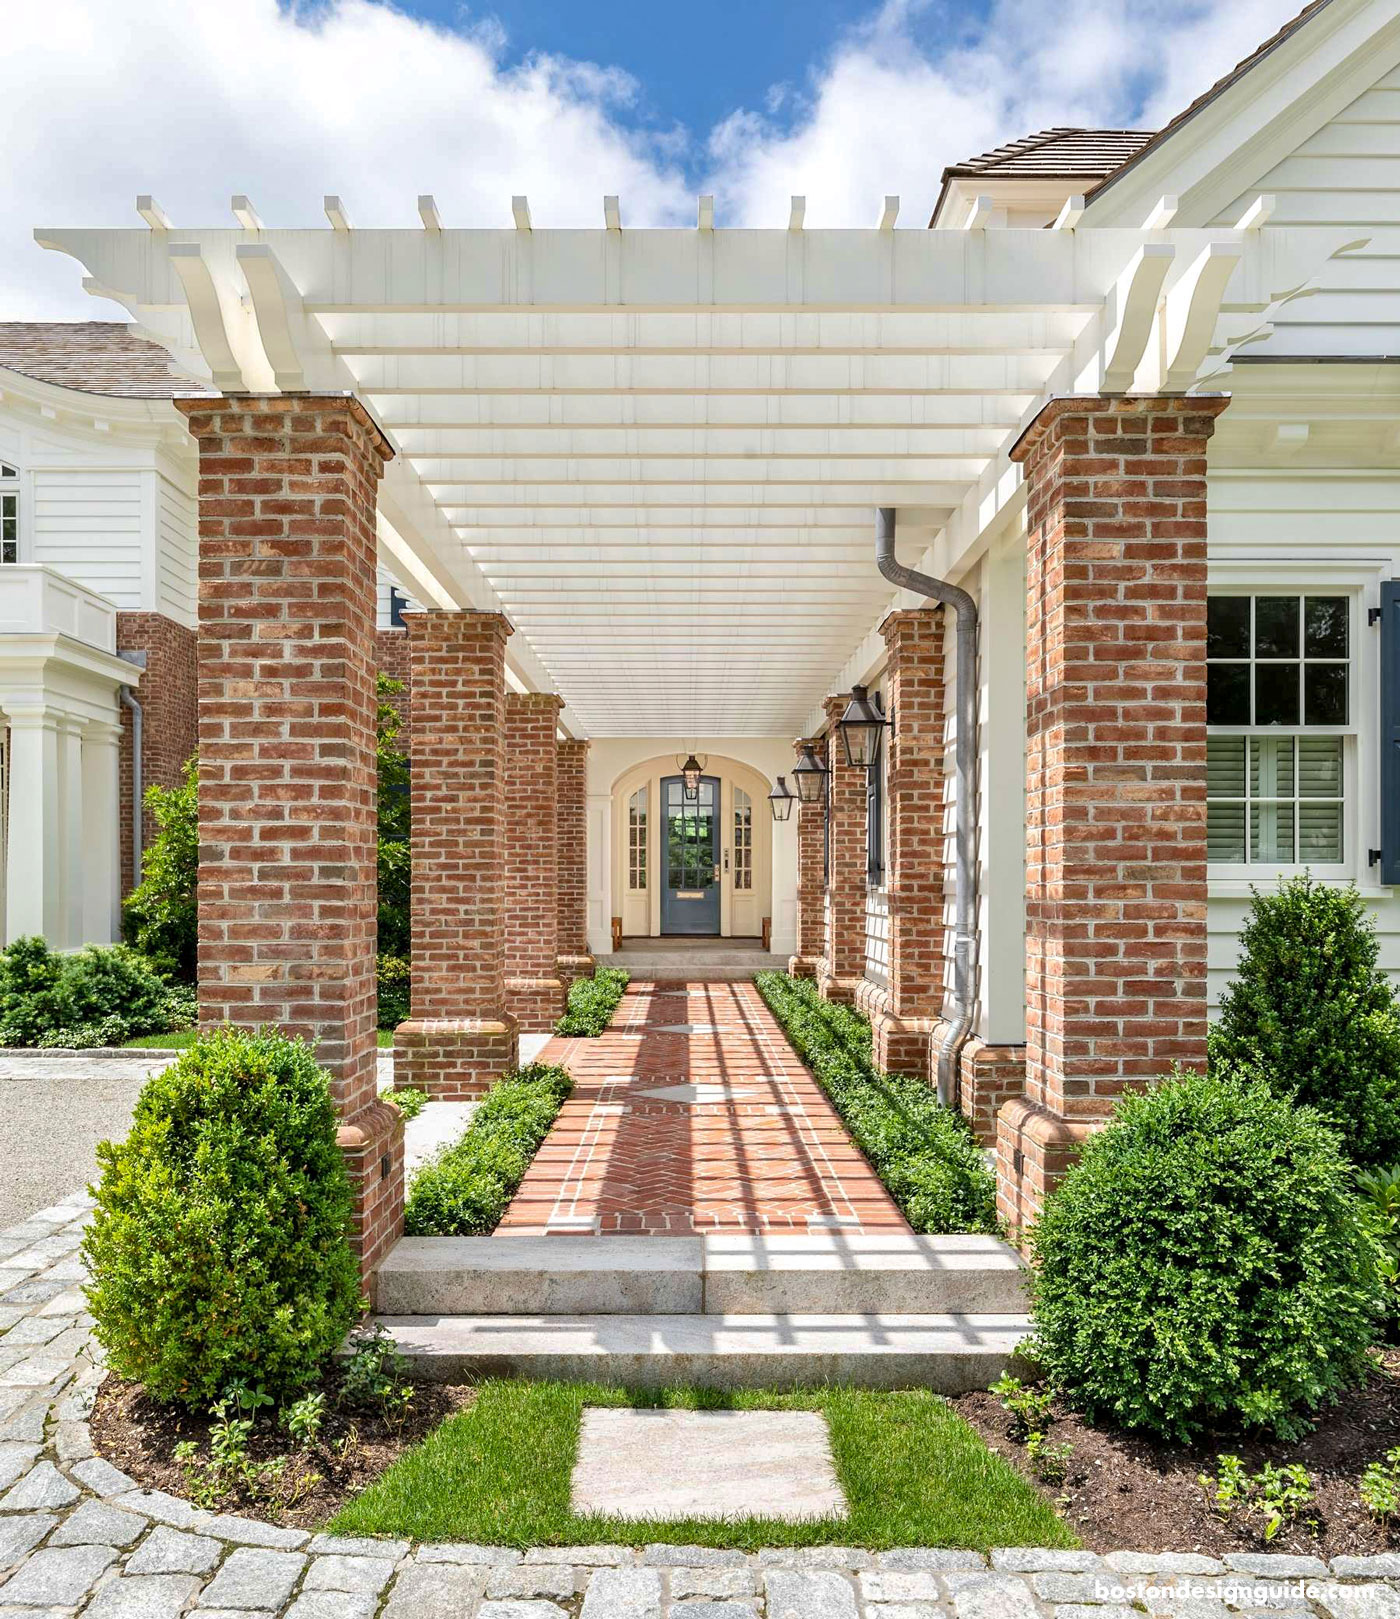 Front entry of home with Pergola overhang